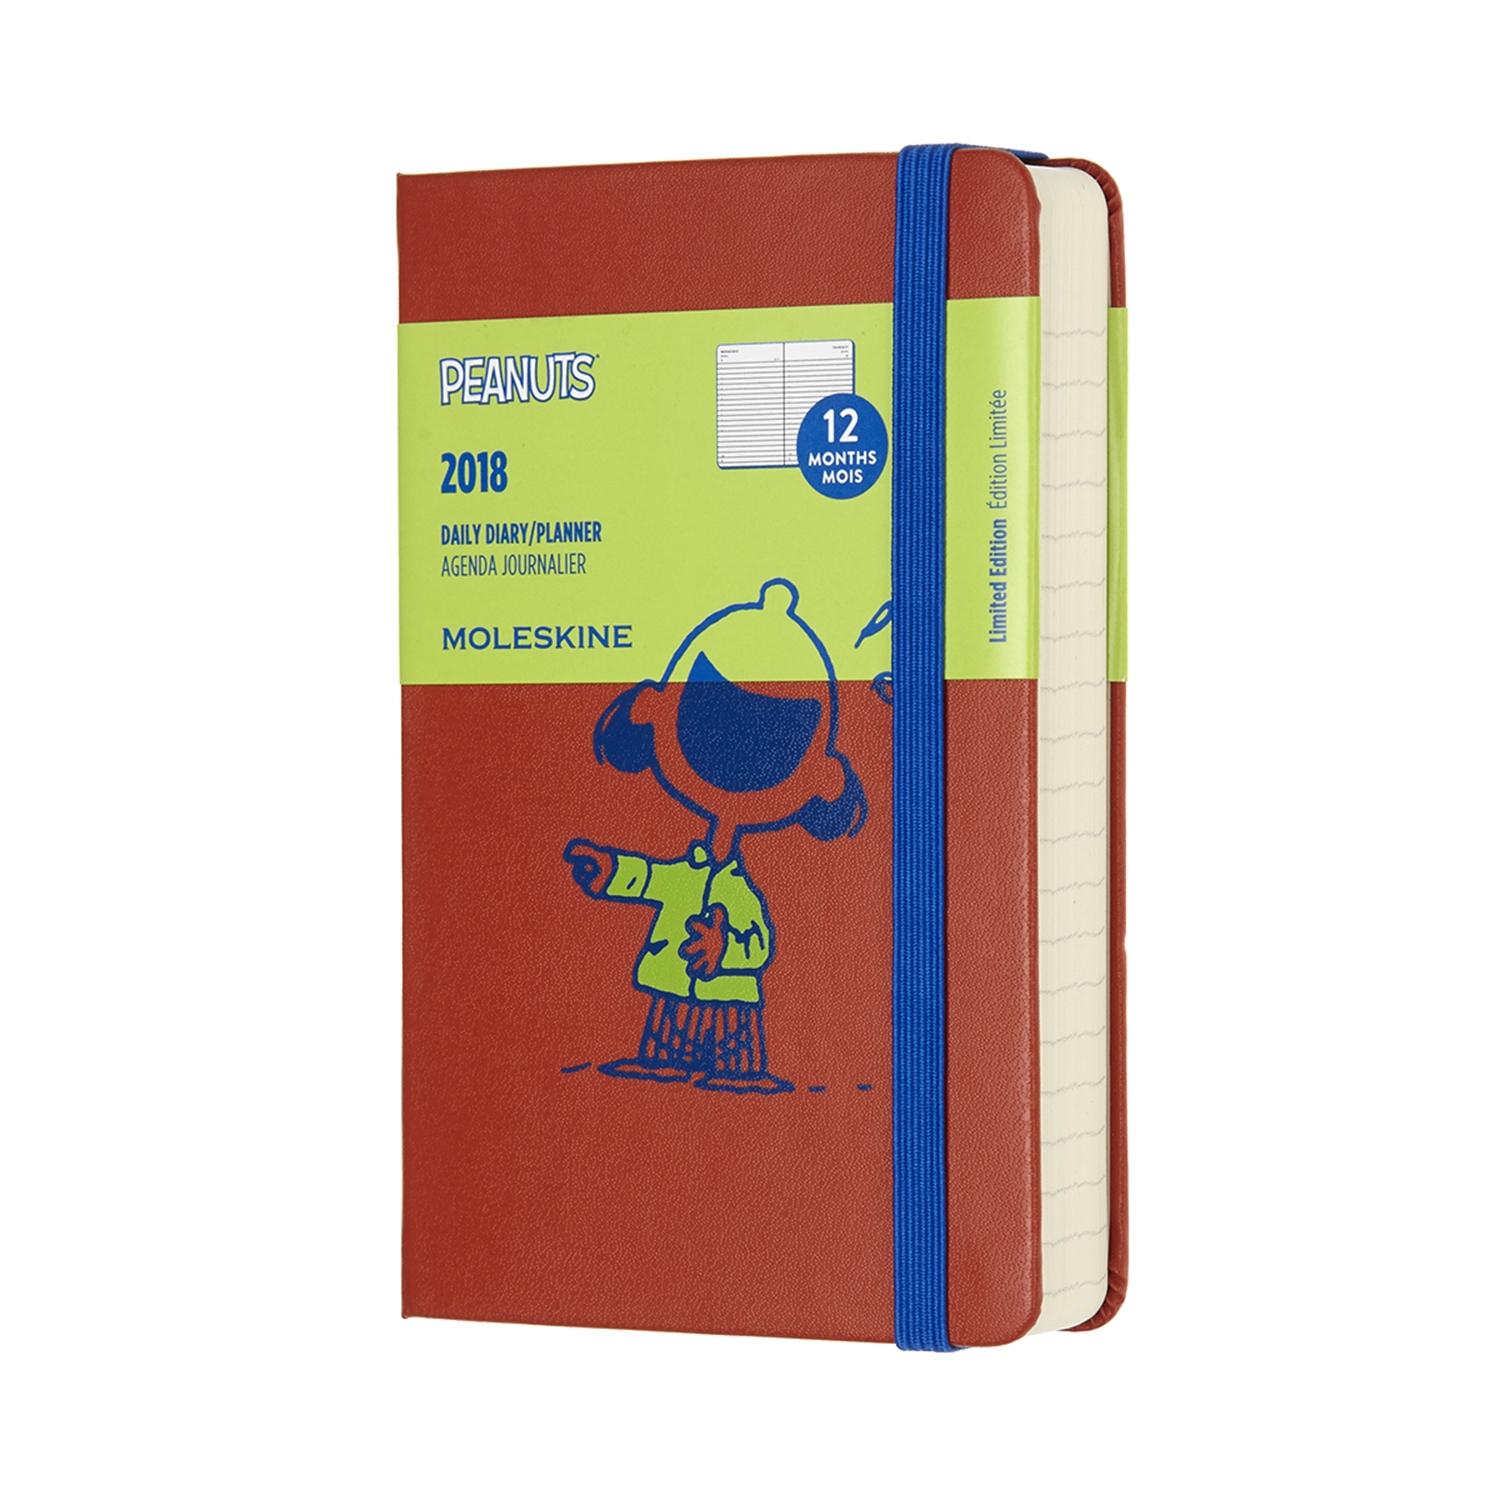 12-Month Limited Edition Peanuts Daily 2018 Planner - Pocket Orange  by MOLESKINE